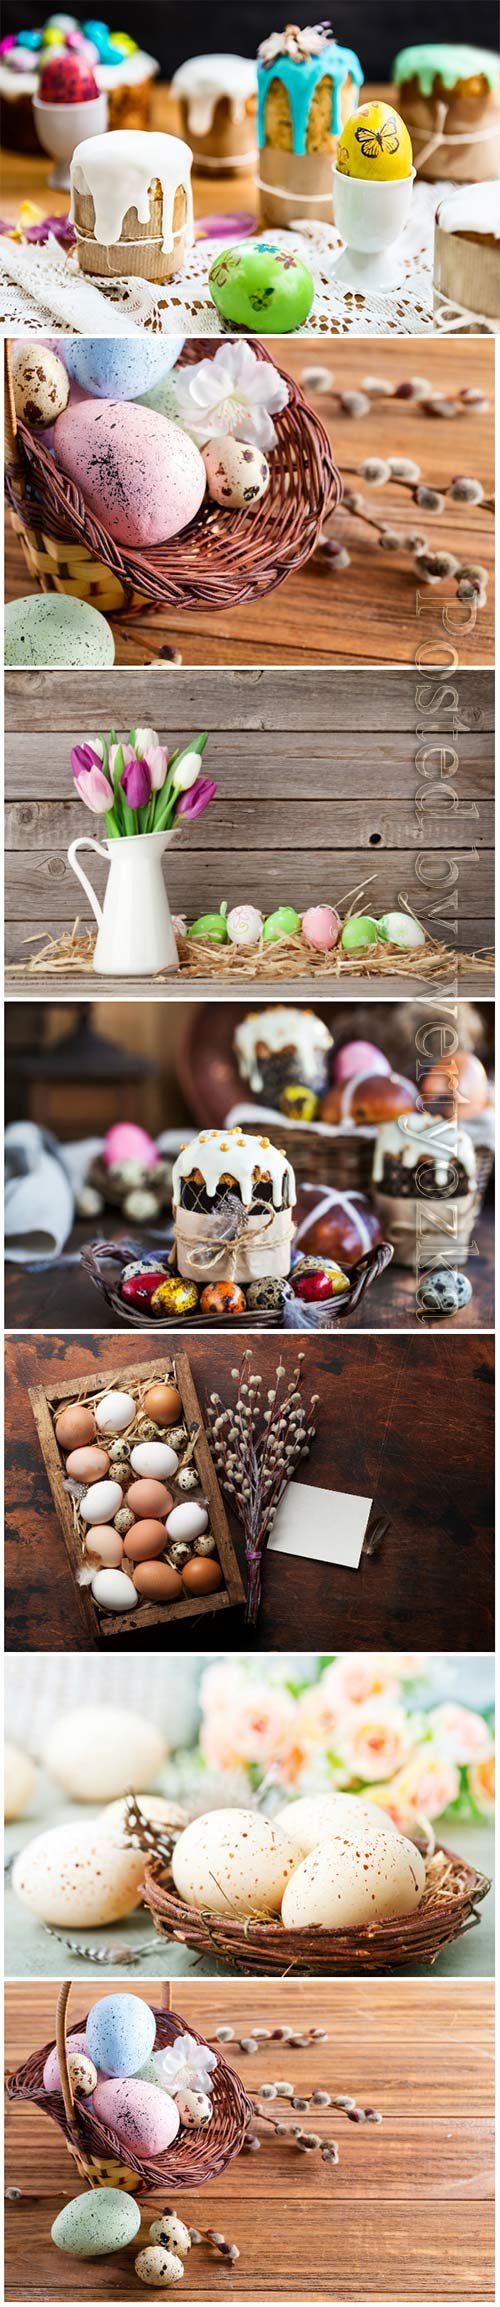 Happy Easter stock photo, Easter eggs, spring flowers # 9